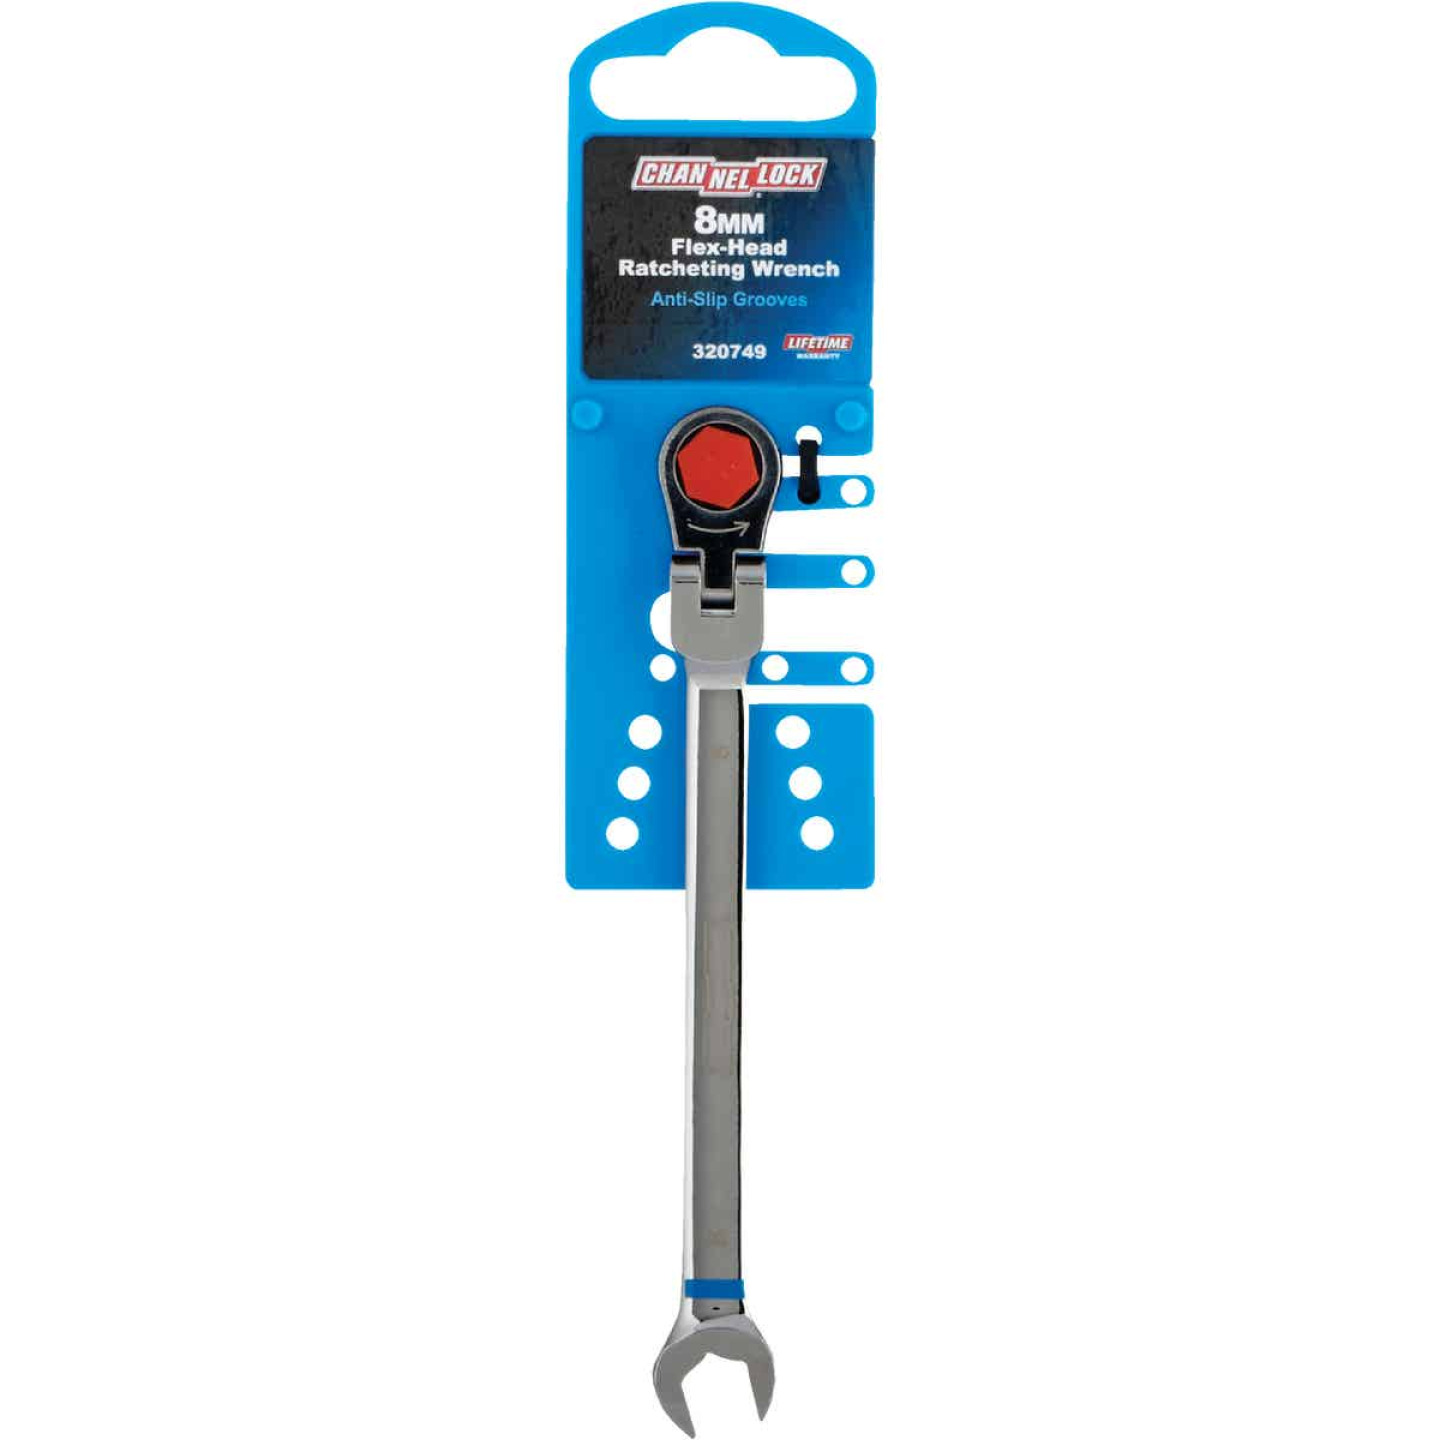 Channellock Metric 8 mm 12-Point Ratcheting Flex-Head Wrench Image 2